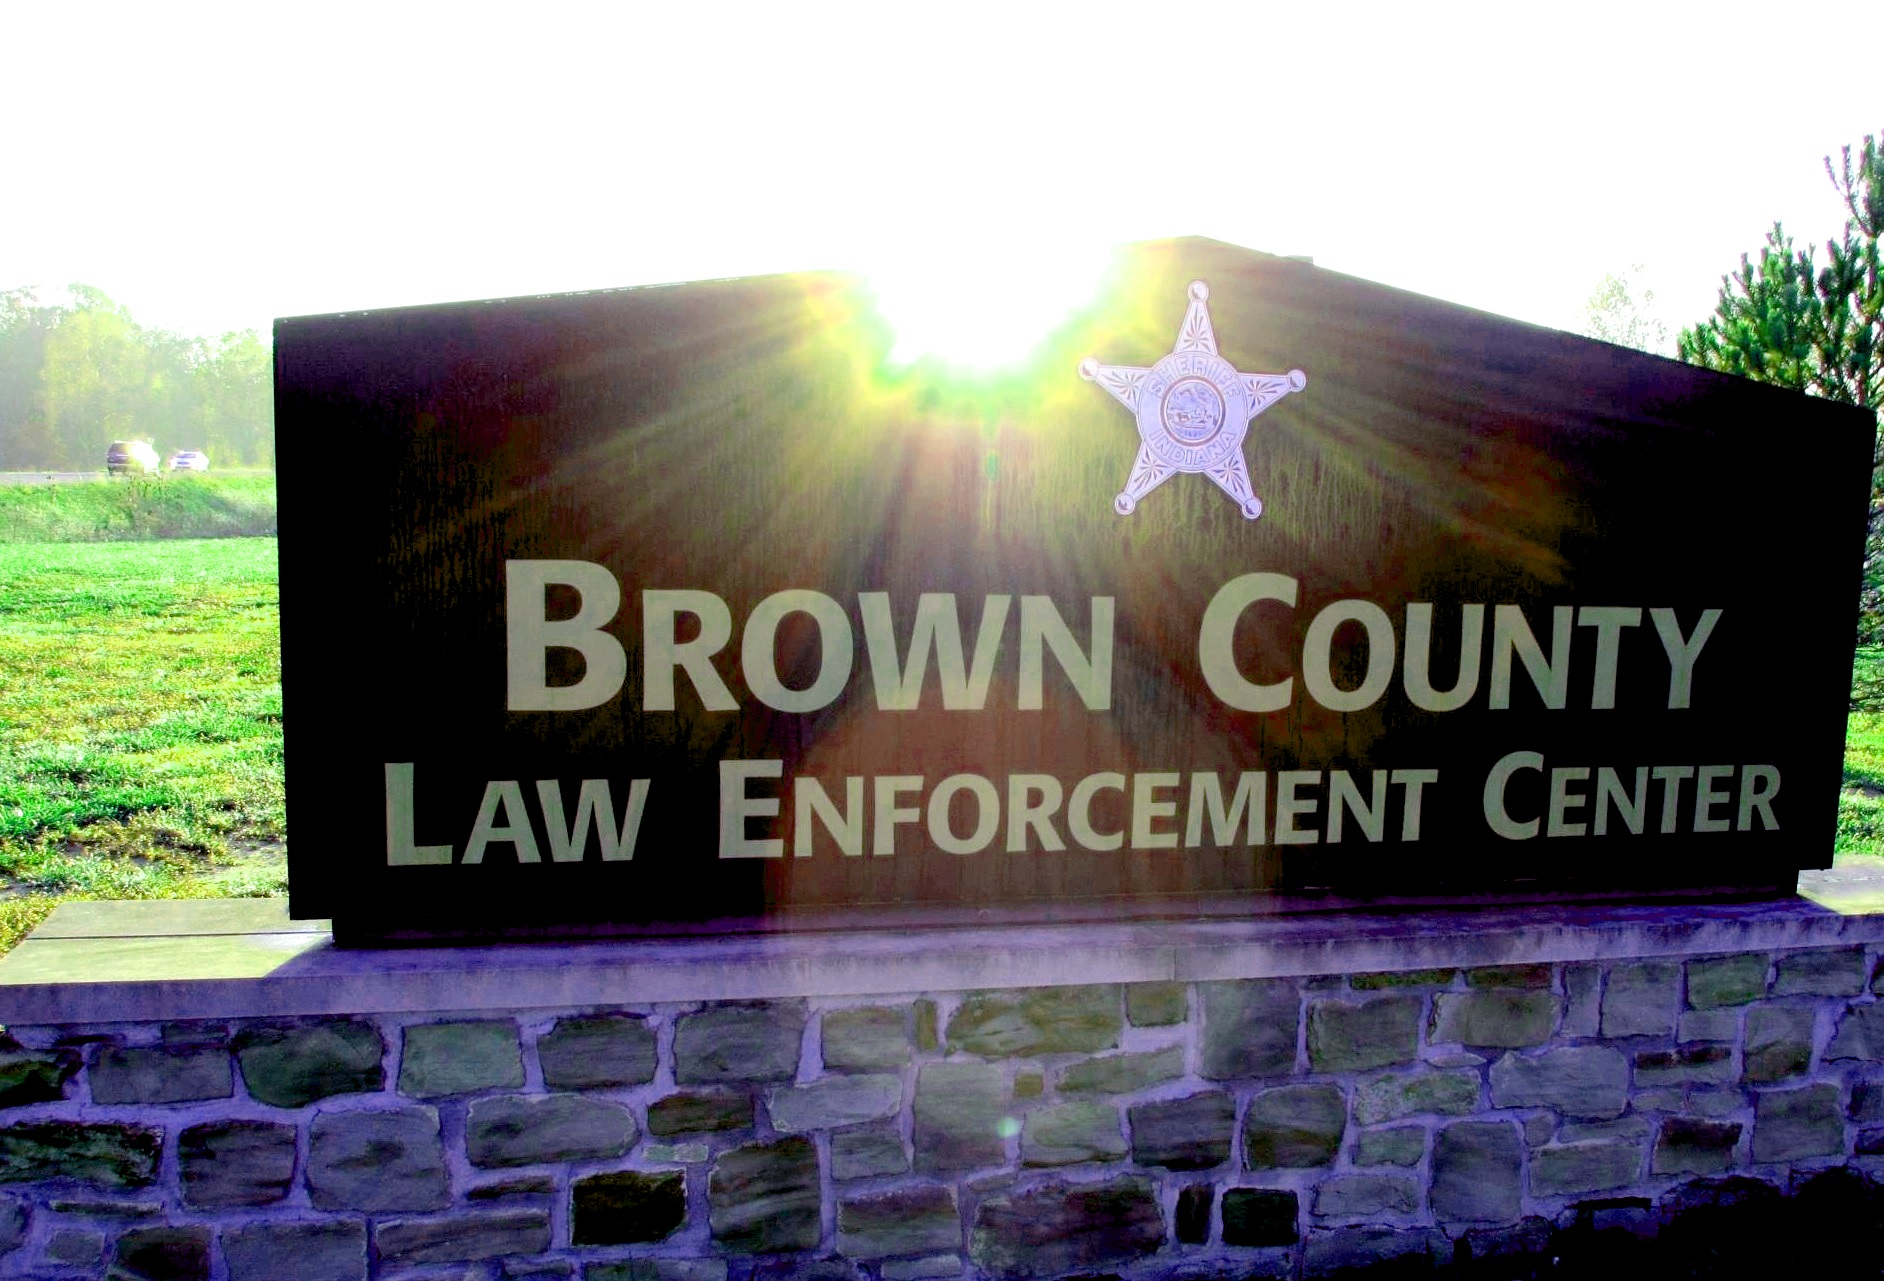 Brown County Law Enforcement Center